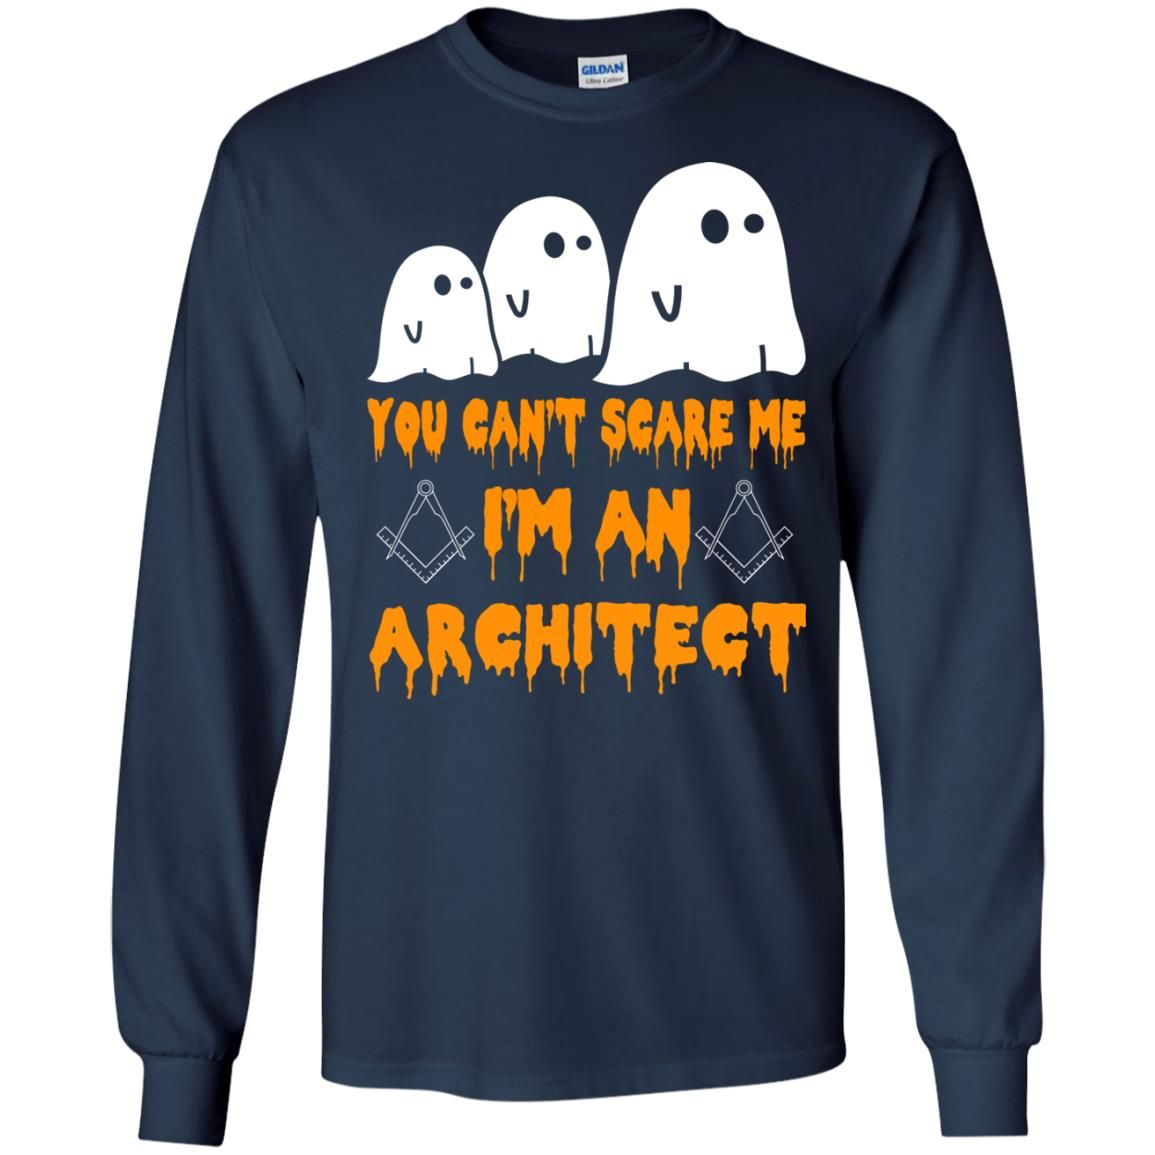 image 518 - You can't scare me I'm an Architect shirt, hoodie, tank